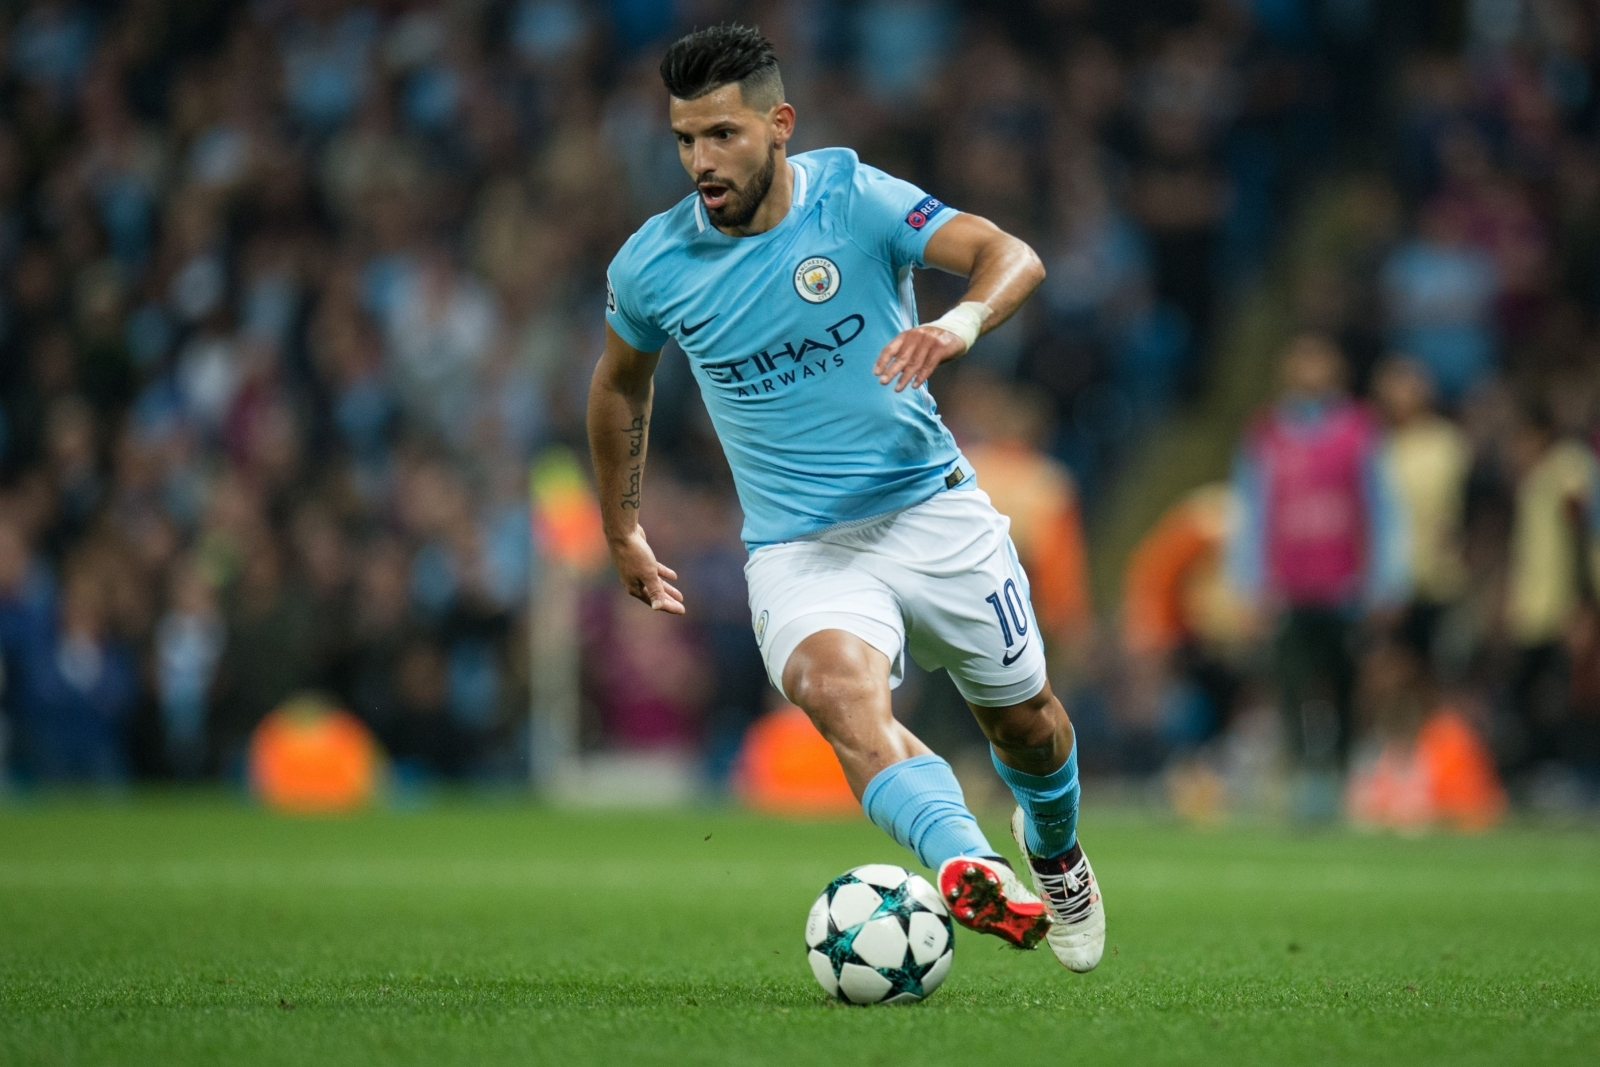 Aguero will be out for six weeks, claims Argentina team doctor